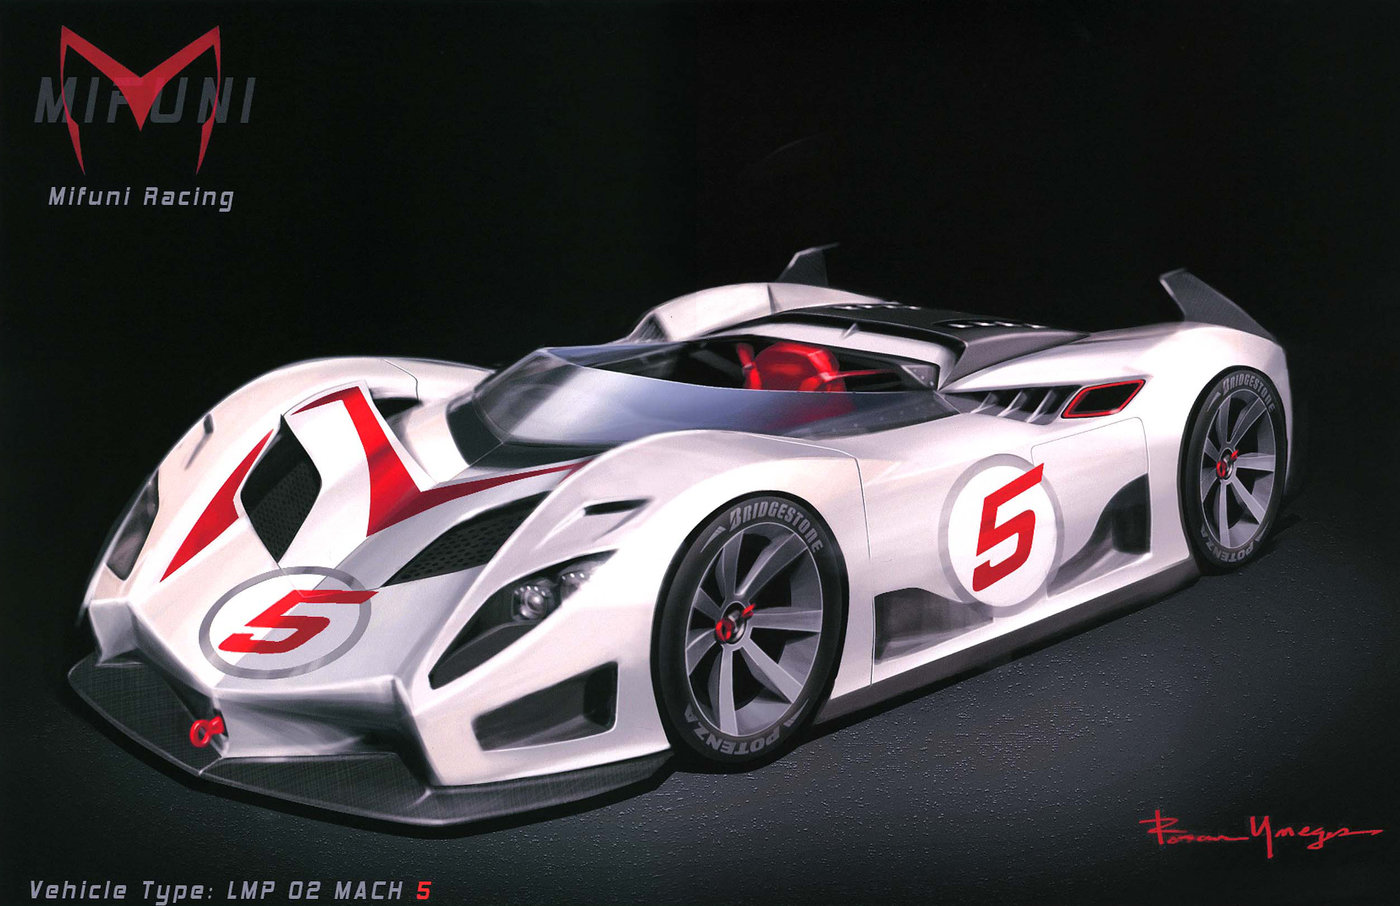 the incredible mach 5 by roman yneges at coroflotcom